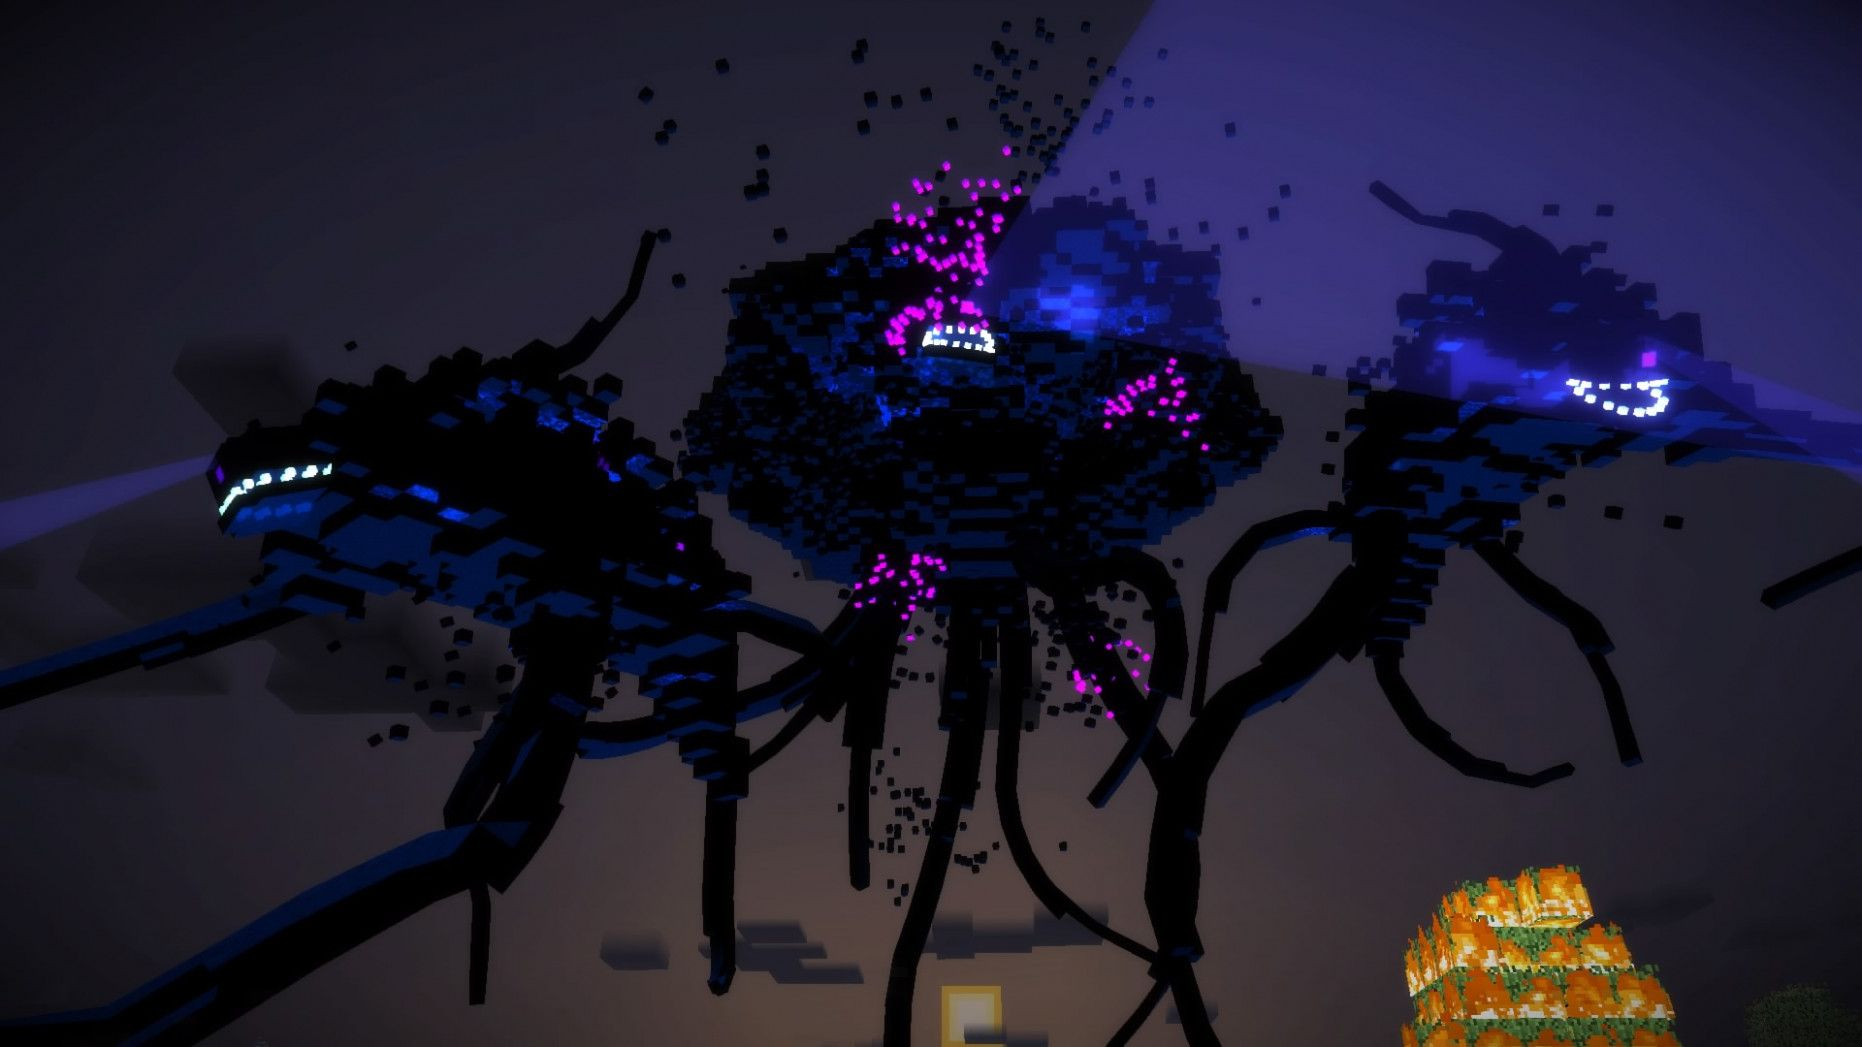 I Will Tell You The Truth About Wither Storm Minecraft Coloring Pages In The Next 20 Seconds Coloring In 2020 Minecraft Coloring Pages Line Artwork Coloring Pages